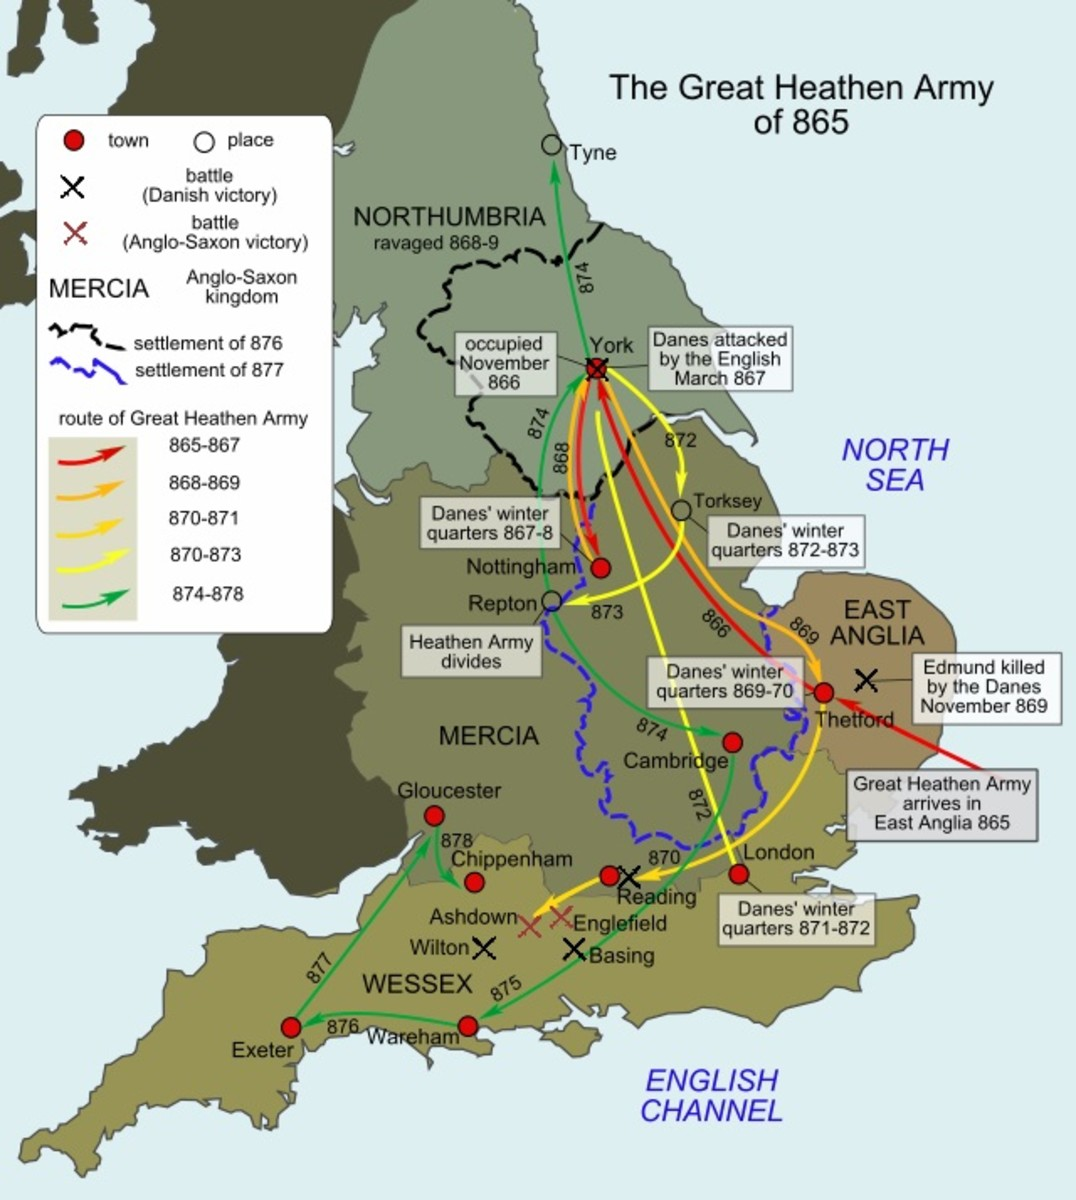 The Great Heathen Army, 'Micel Here' crossed to East Anglia first before moving on north to seize Aelle. The Bernician king was prosaically dealt with whilst Osberht of Deira was held hostage